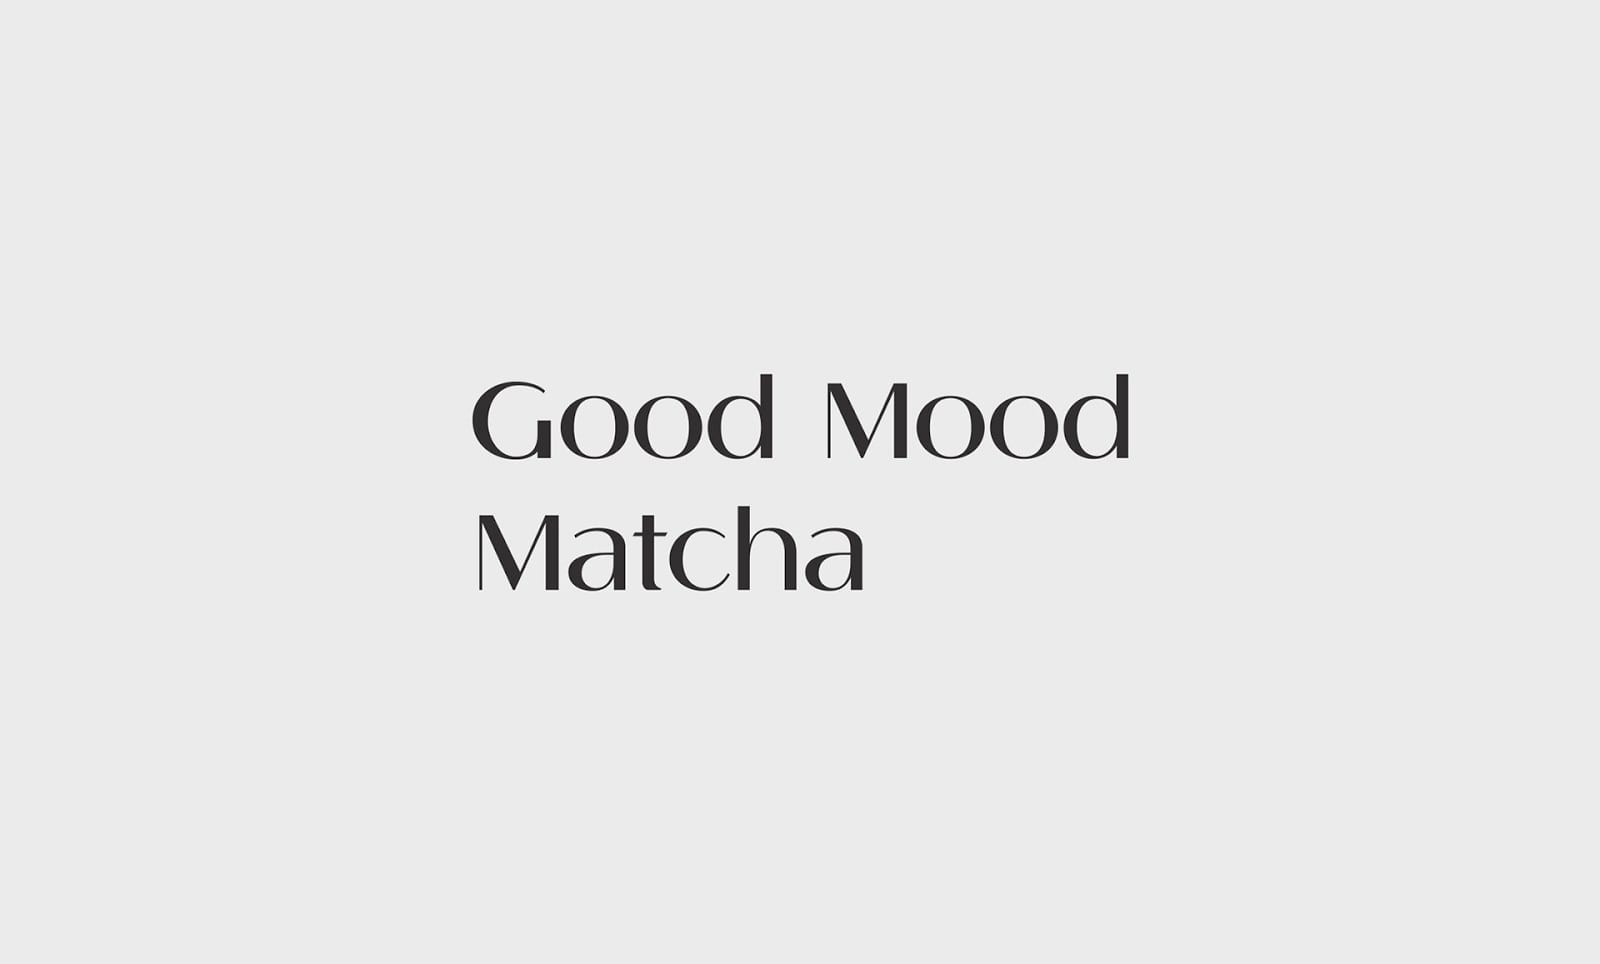 Good Mood Macha 02 - Ach, tie obaly – Good Mood Matcha